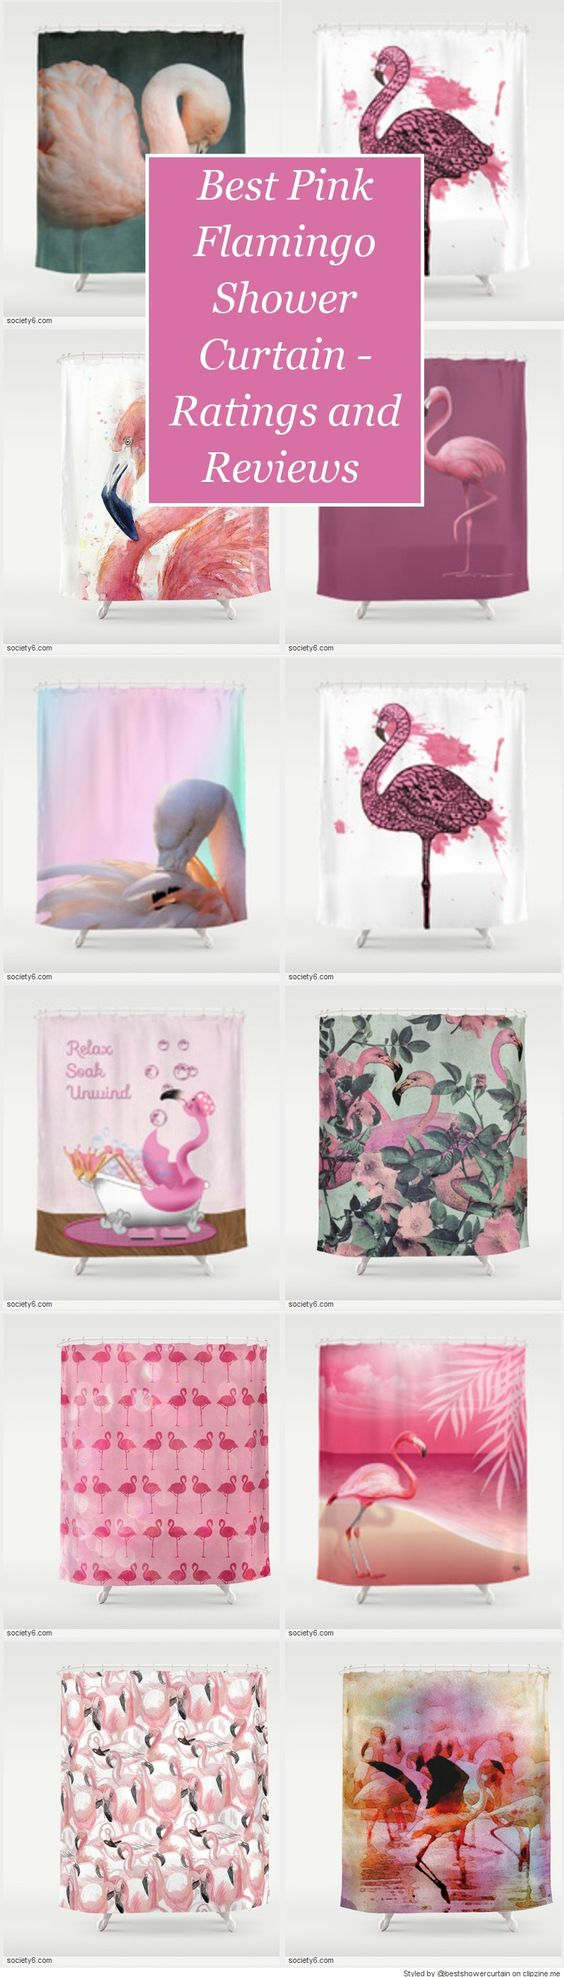 Best Pink Flamingo Shower Curtain Designs - Fabric Shower Curtains - cover